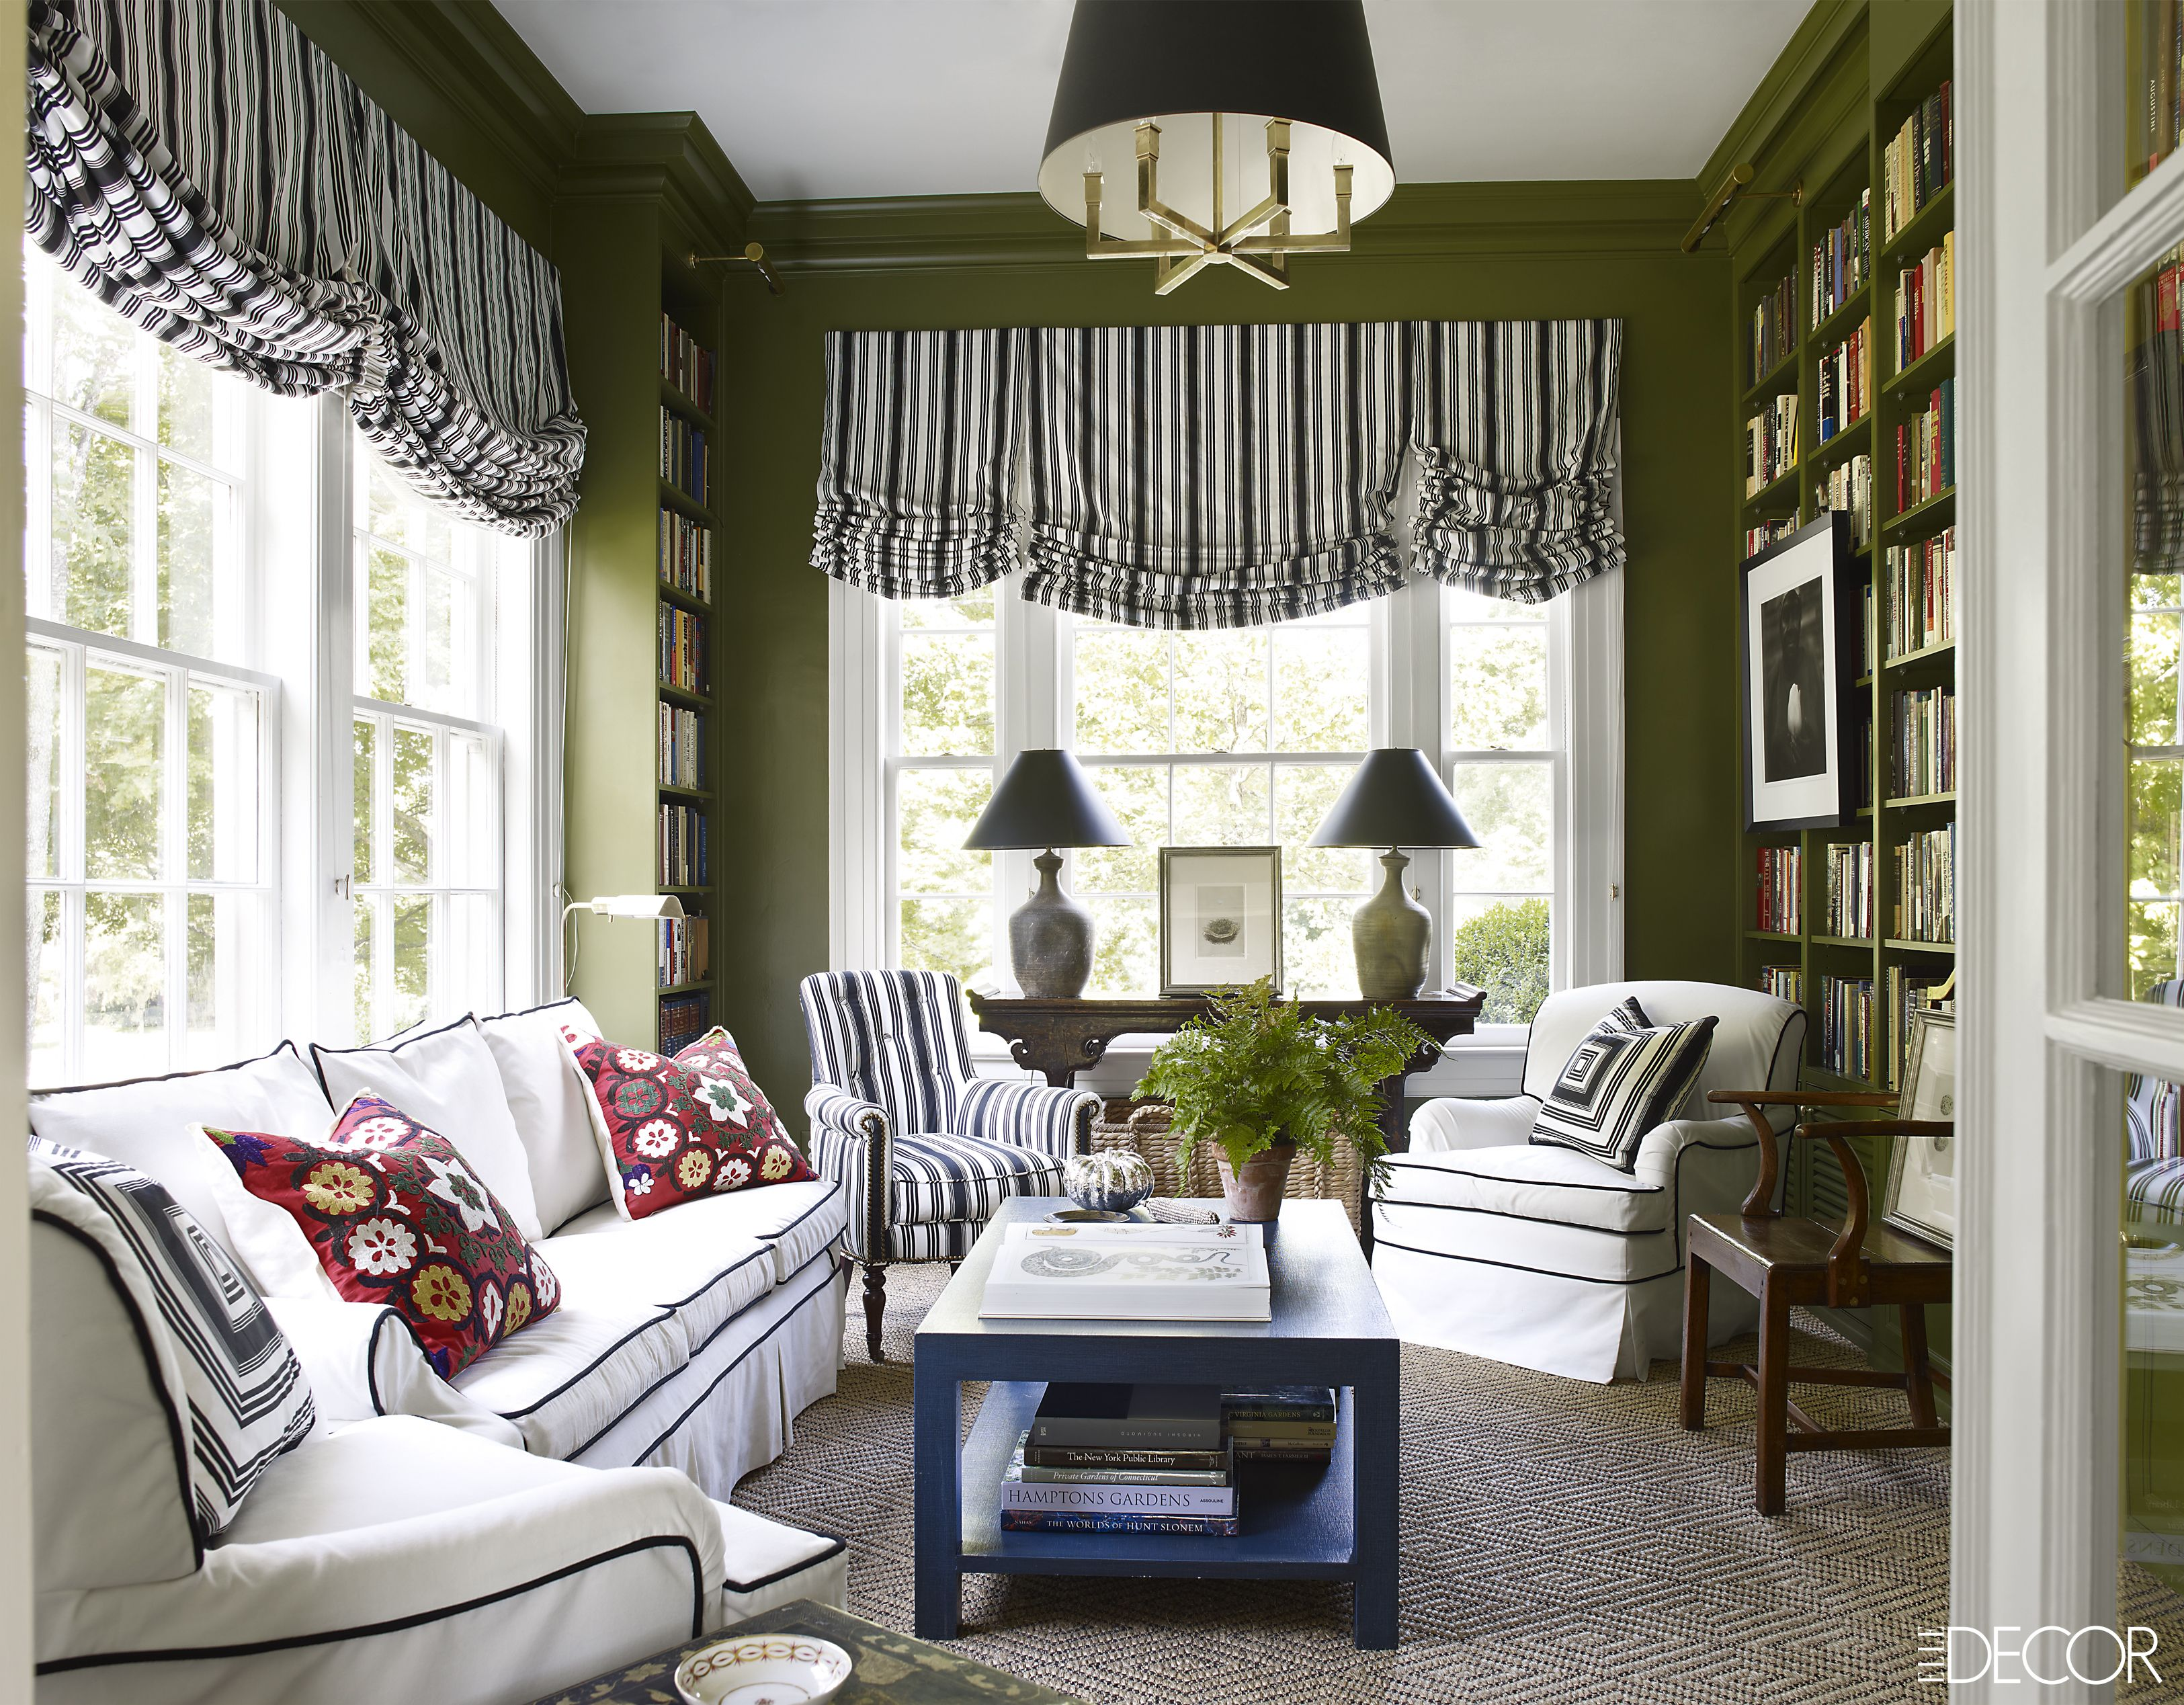 Living Room Color Green 20 best green rooms - green paint colors and decor ideas